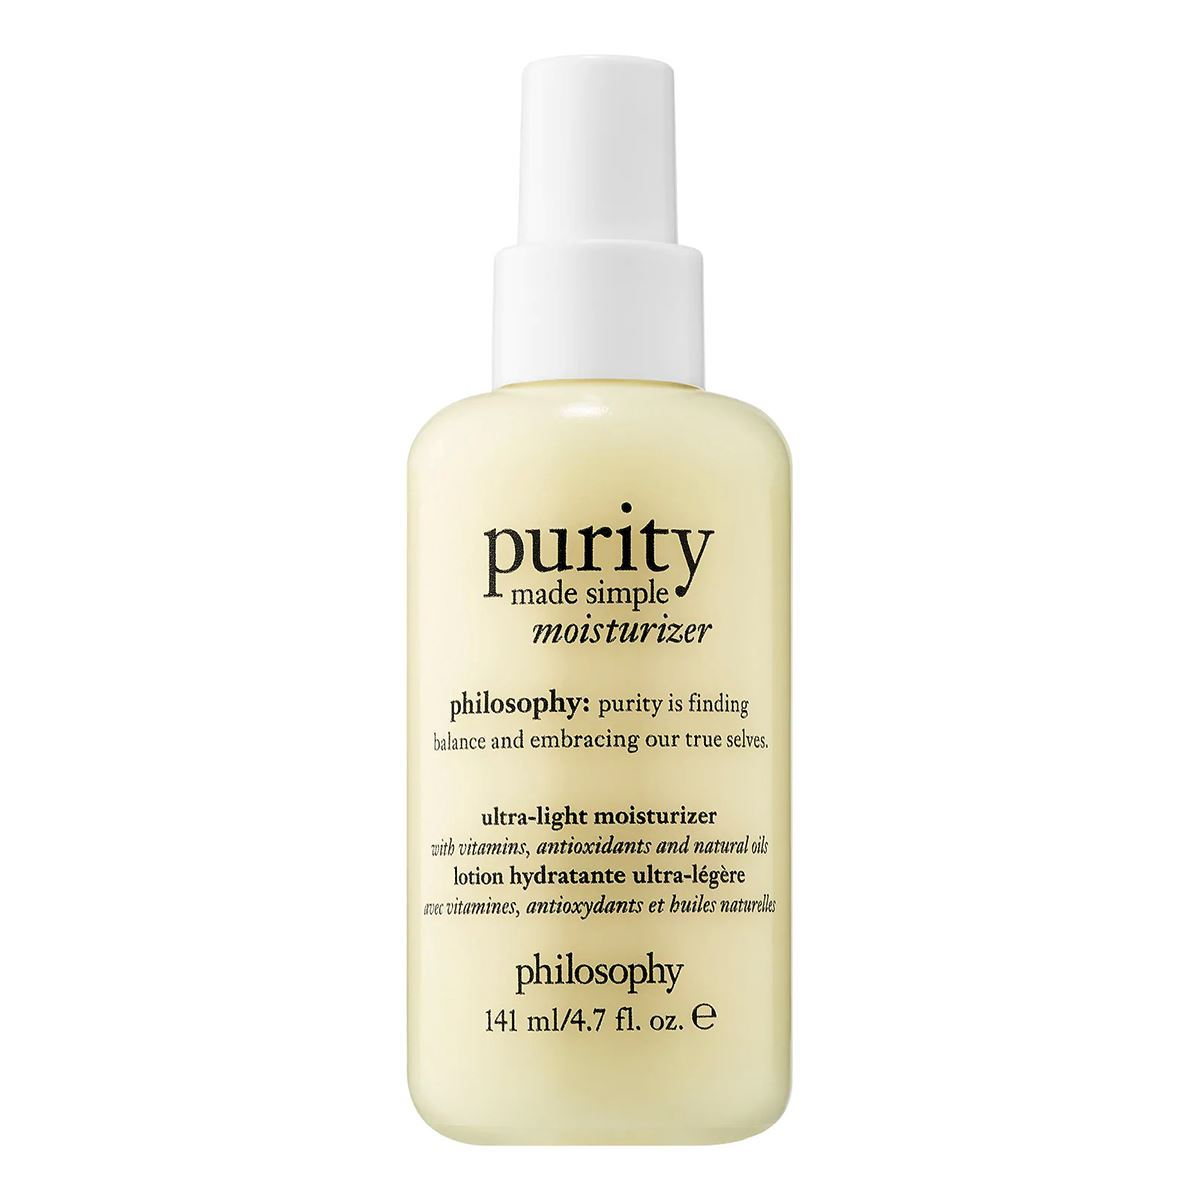 Picture of Purity Moisturizer